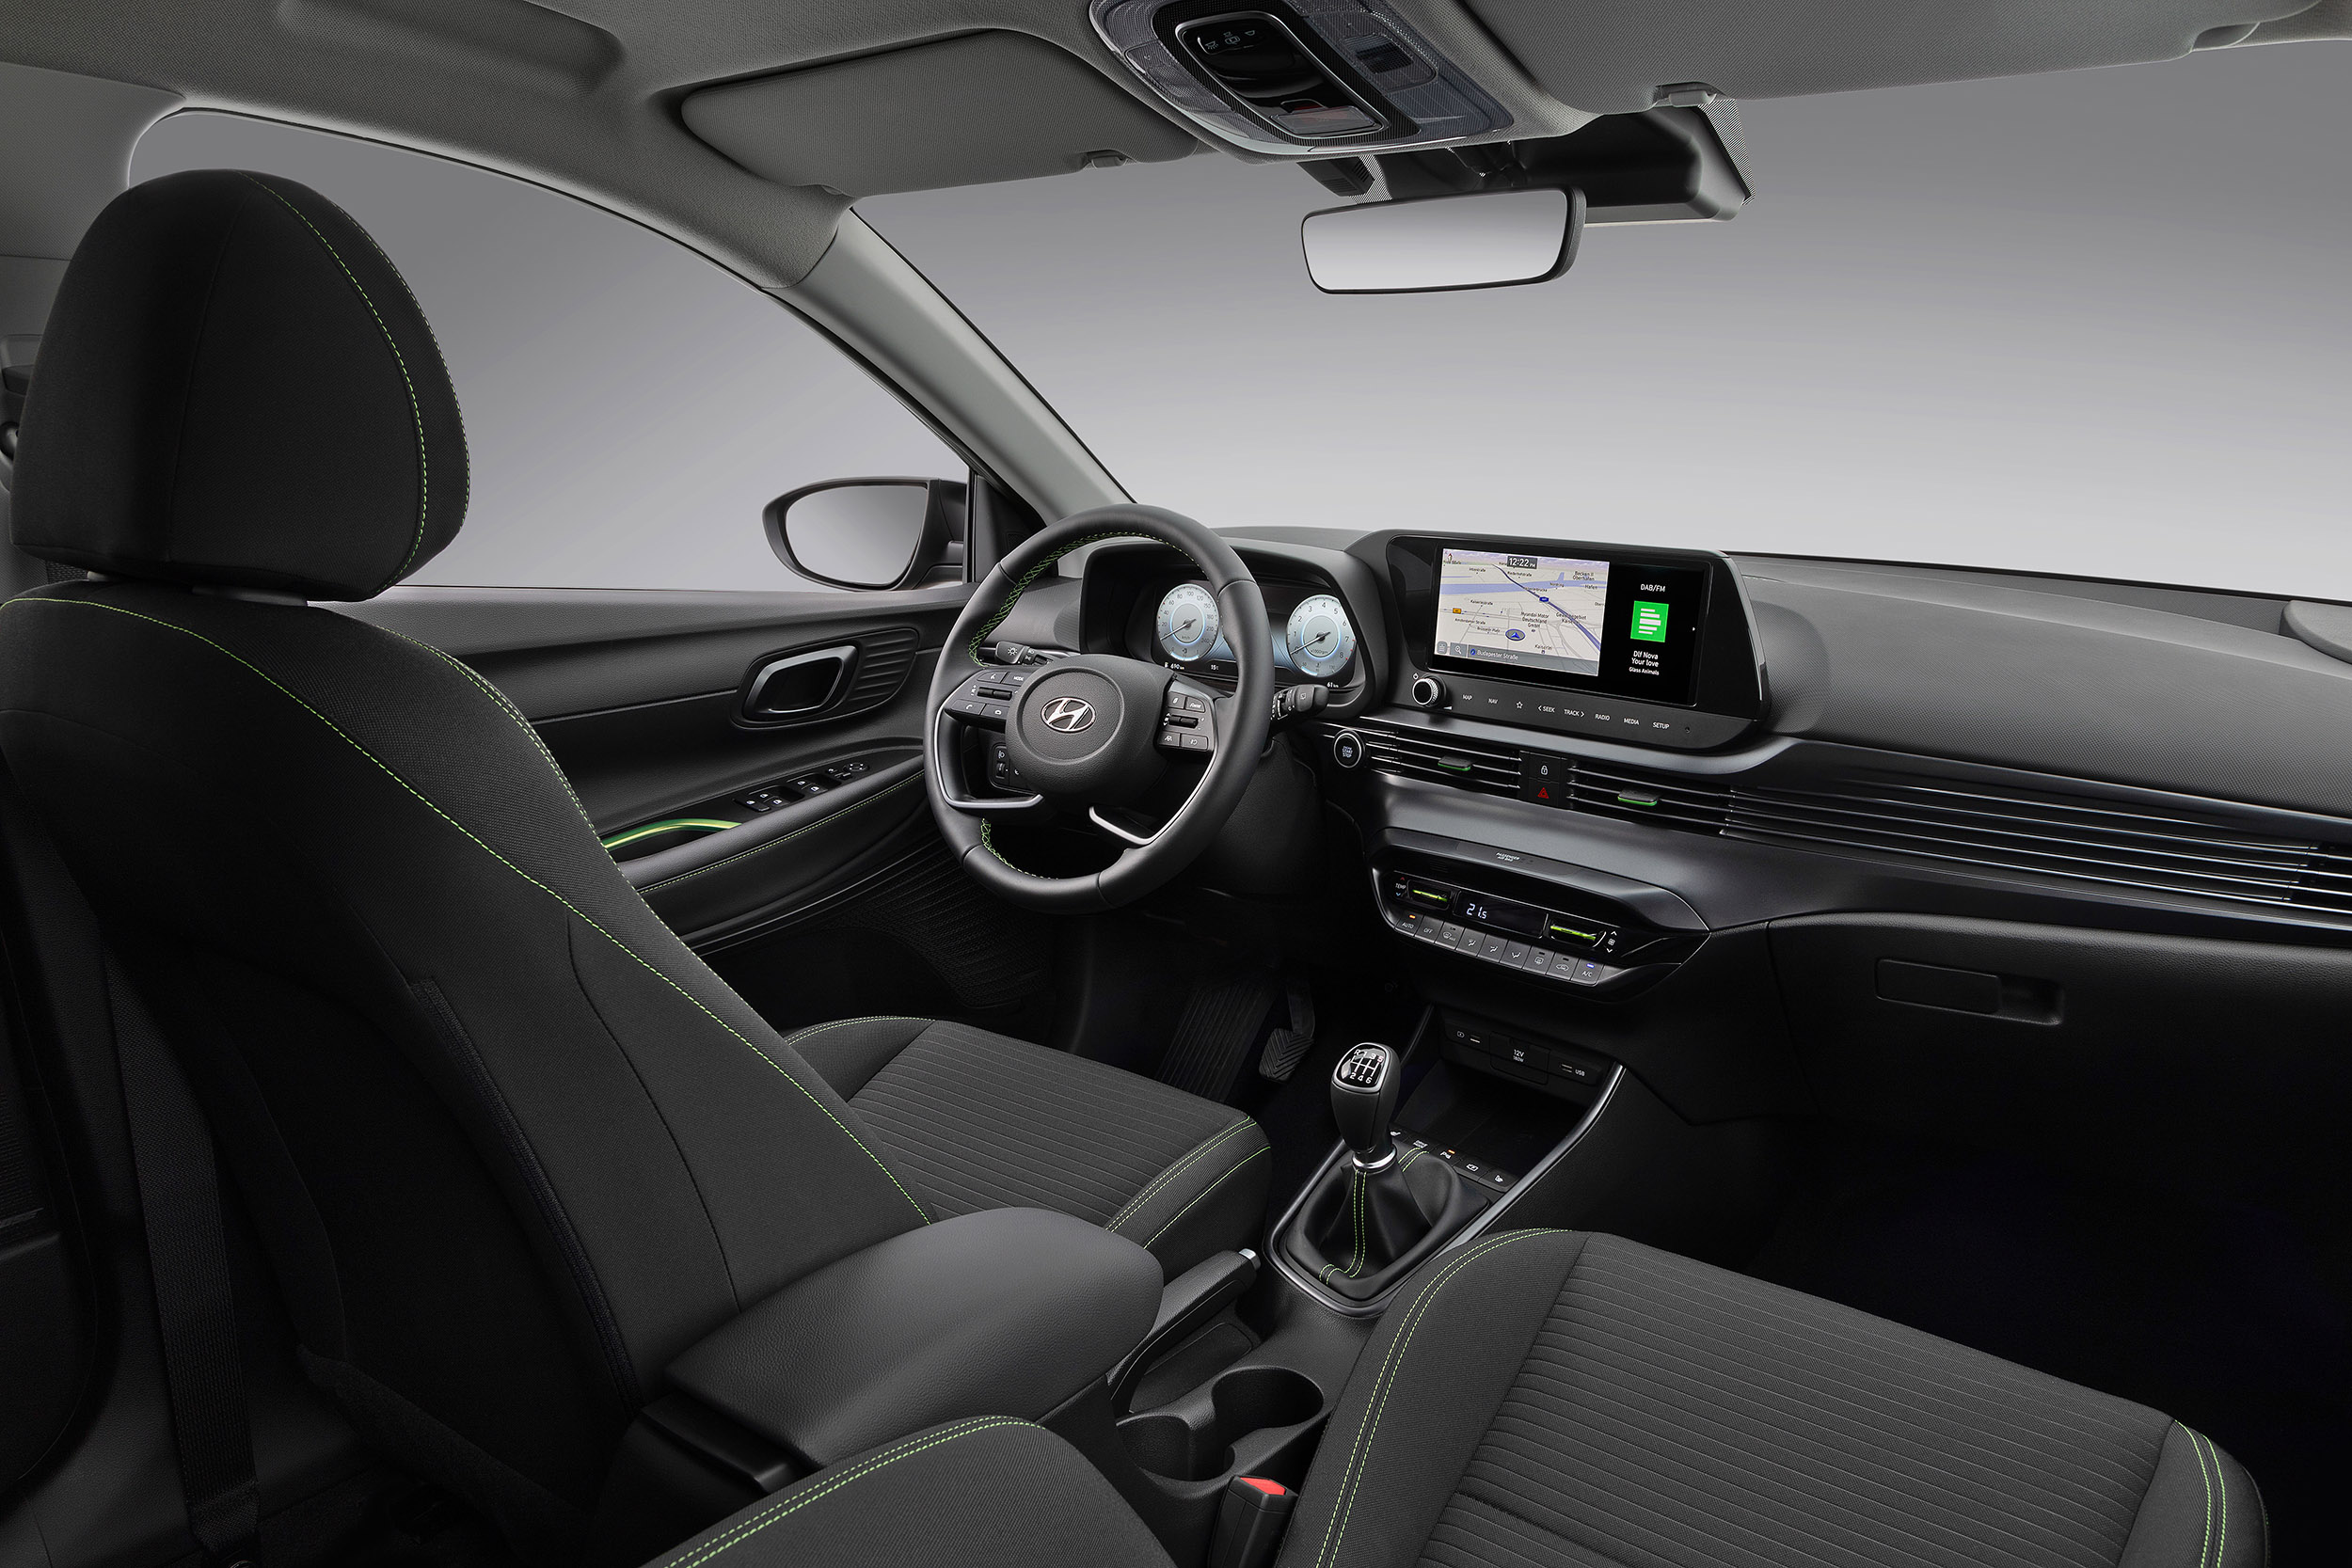 The all-new Hyundai i20 cockpit viewed from the passenger door